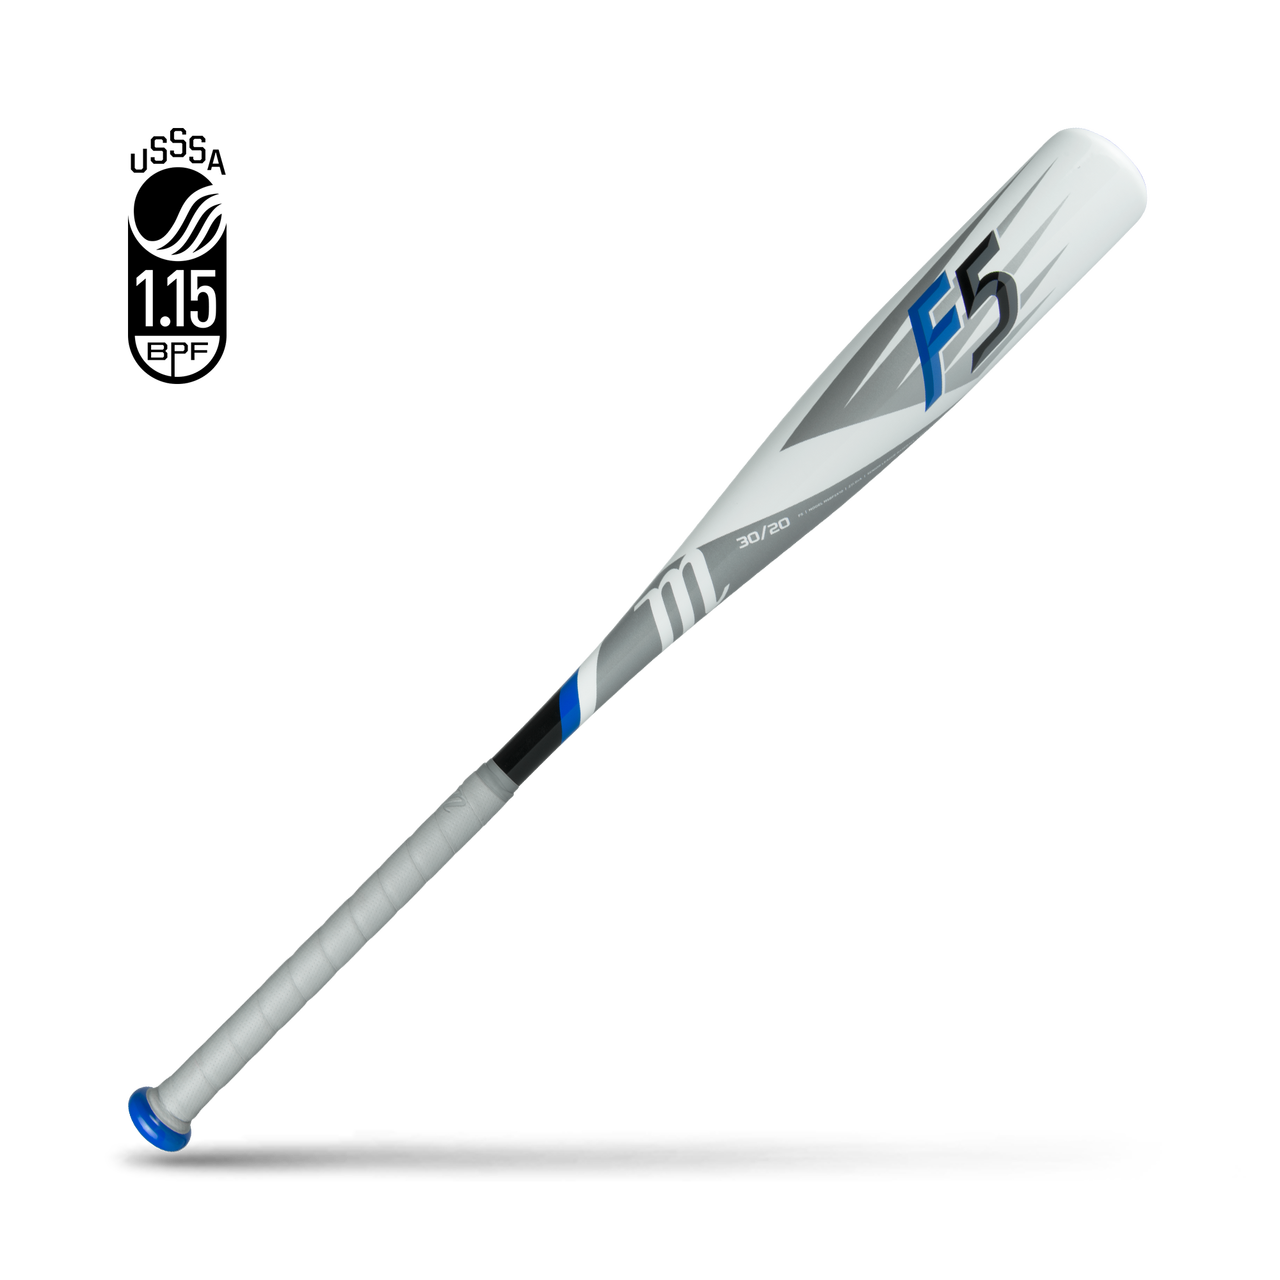 Marucci F5 Senior League -10 Baseball Bat